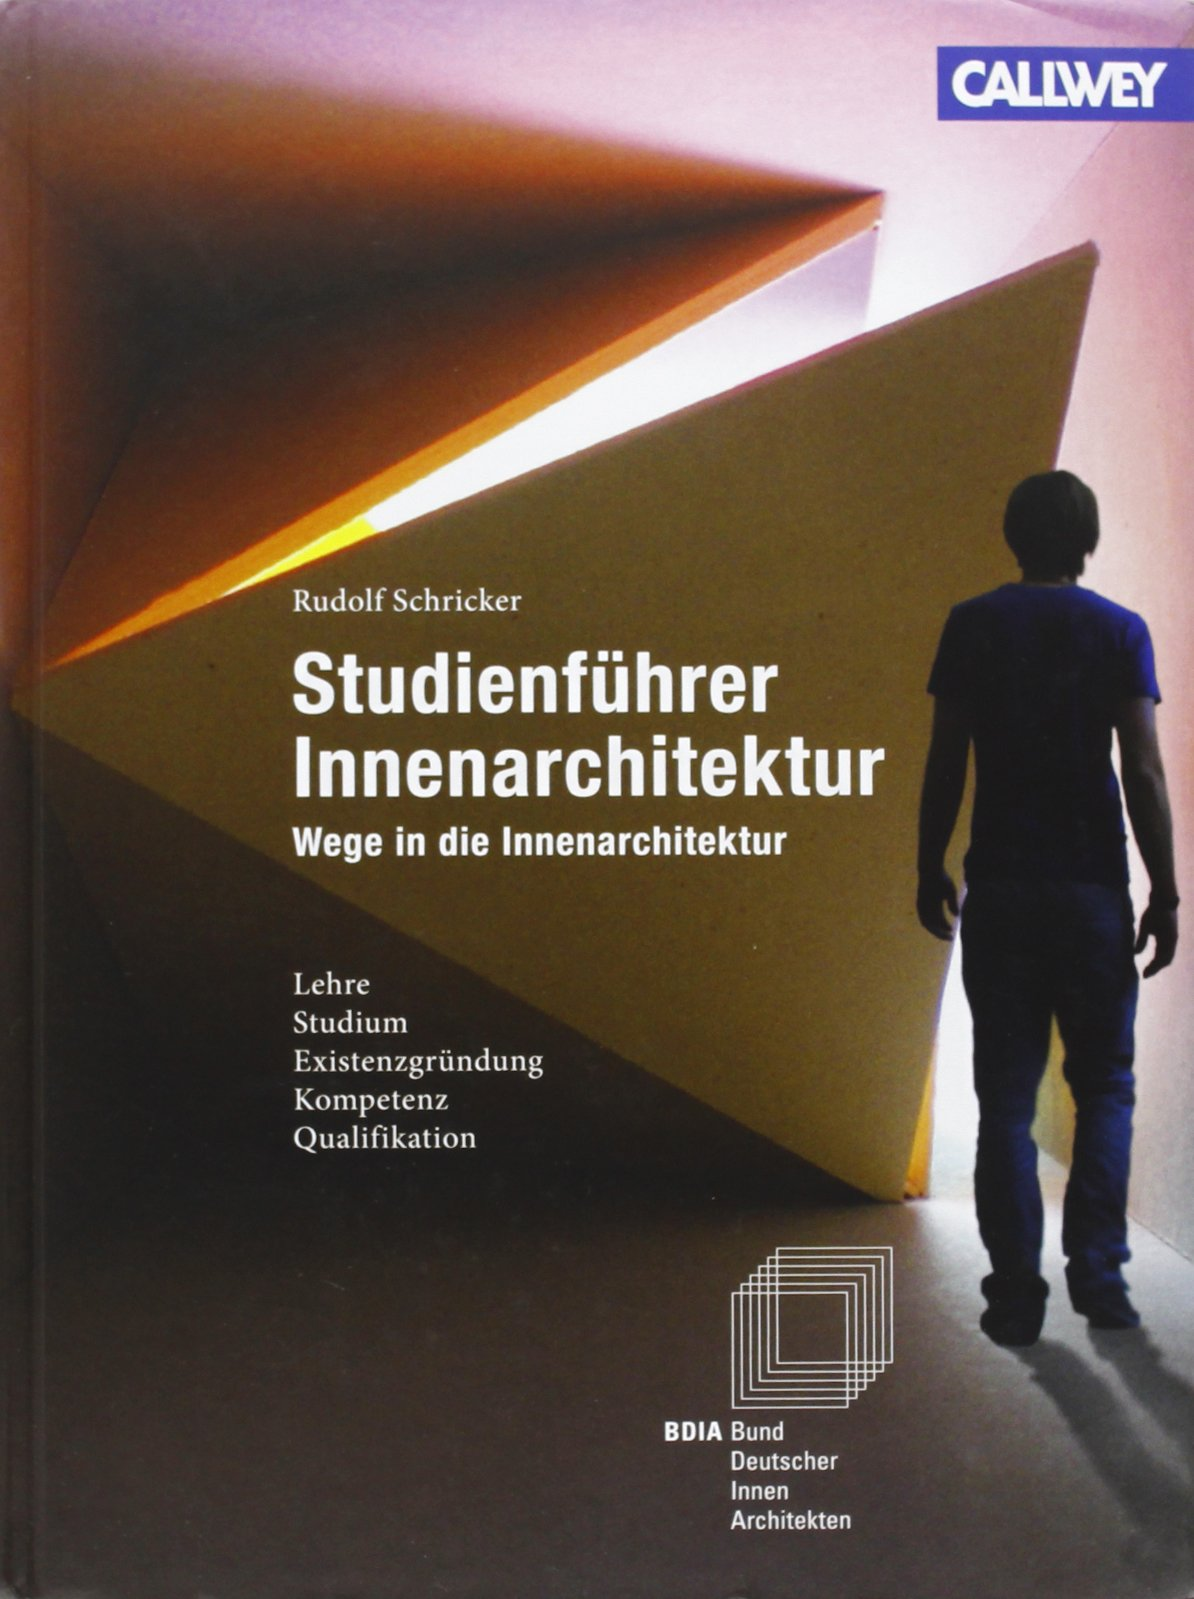 Innenarchitektur Qualifikationen studienführer innenarchitektur amazon de bund deutscher